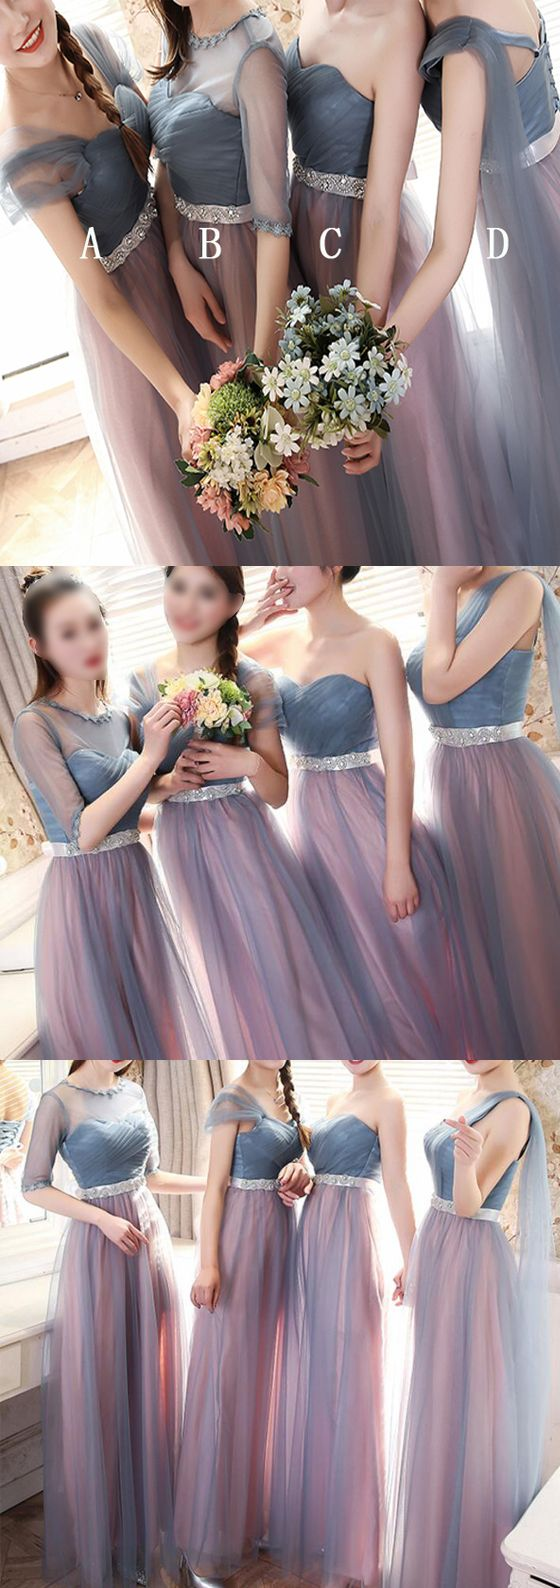 Long bridesmaid dress, mismatched bridesmaid dress, tulle bridesmaid dress, new arrival bridesmaid dress, unique bridesmaid dress, PD15464 #bridesmaid #bridesmaidsdress #weddings #weddingpartydress